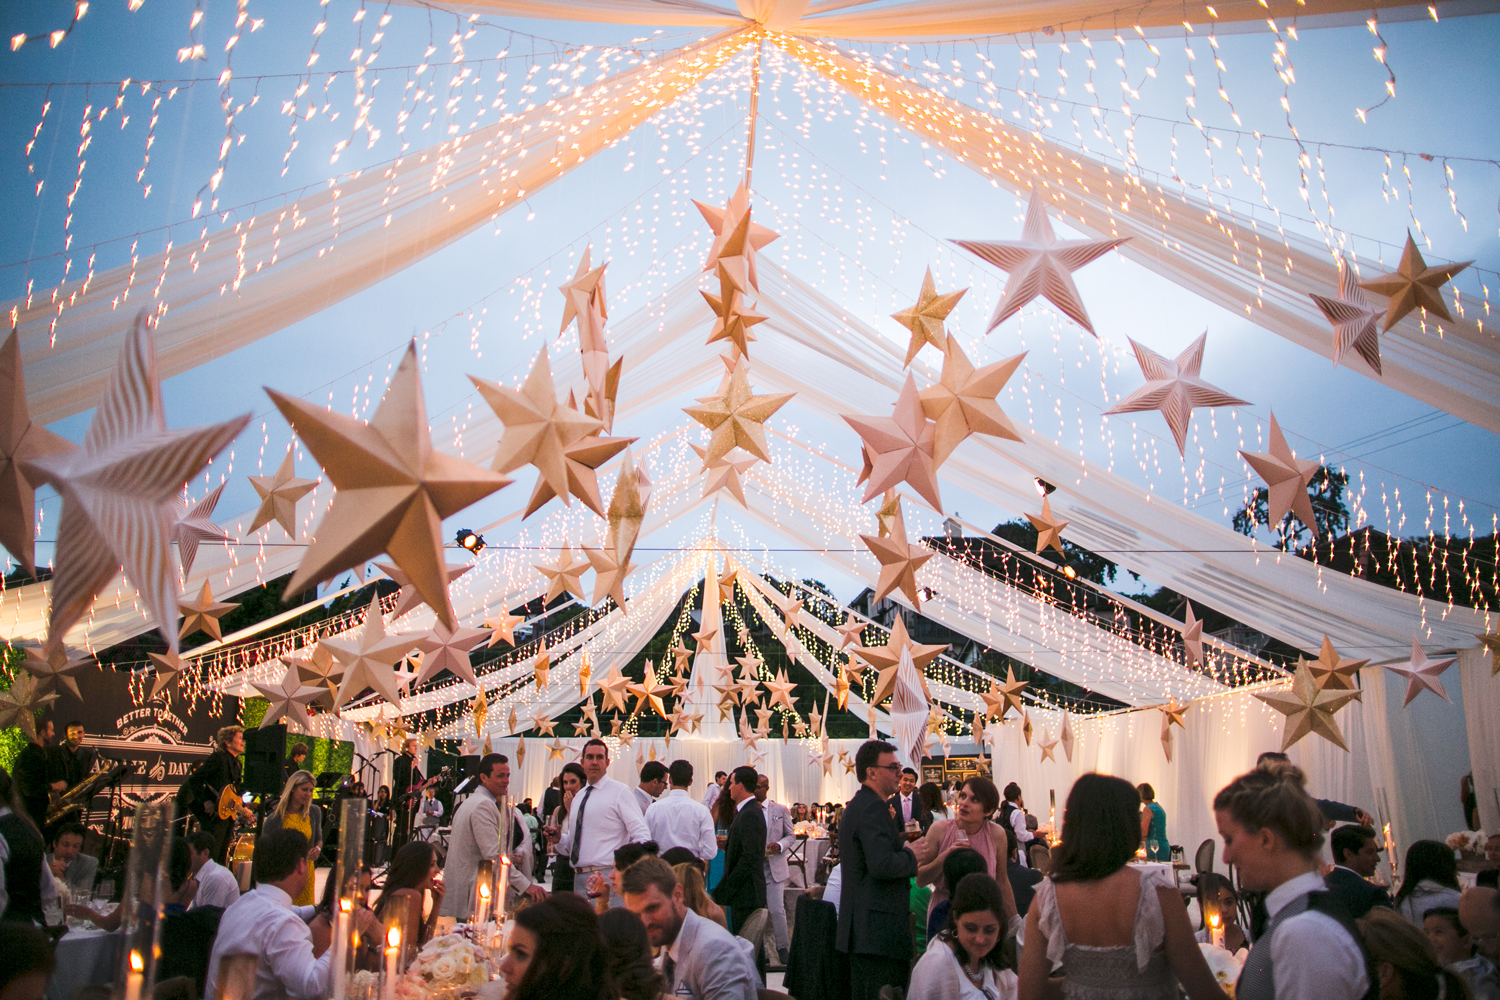 twinkle lights cascading on open air tent ceiling with dimensional stars